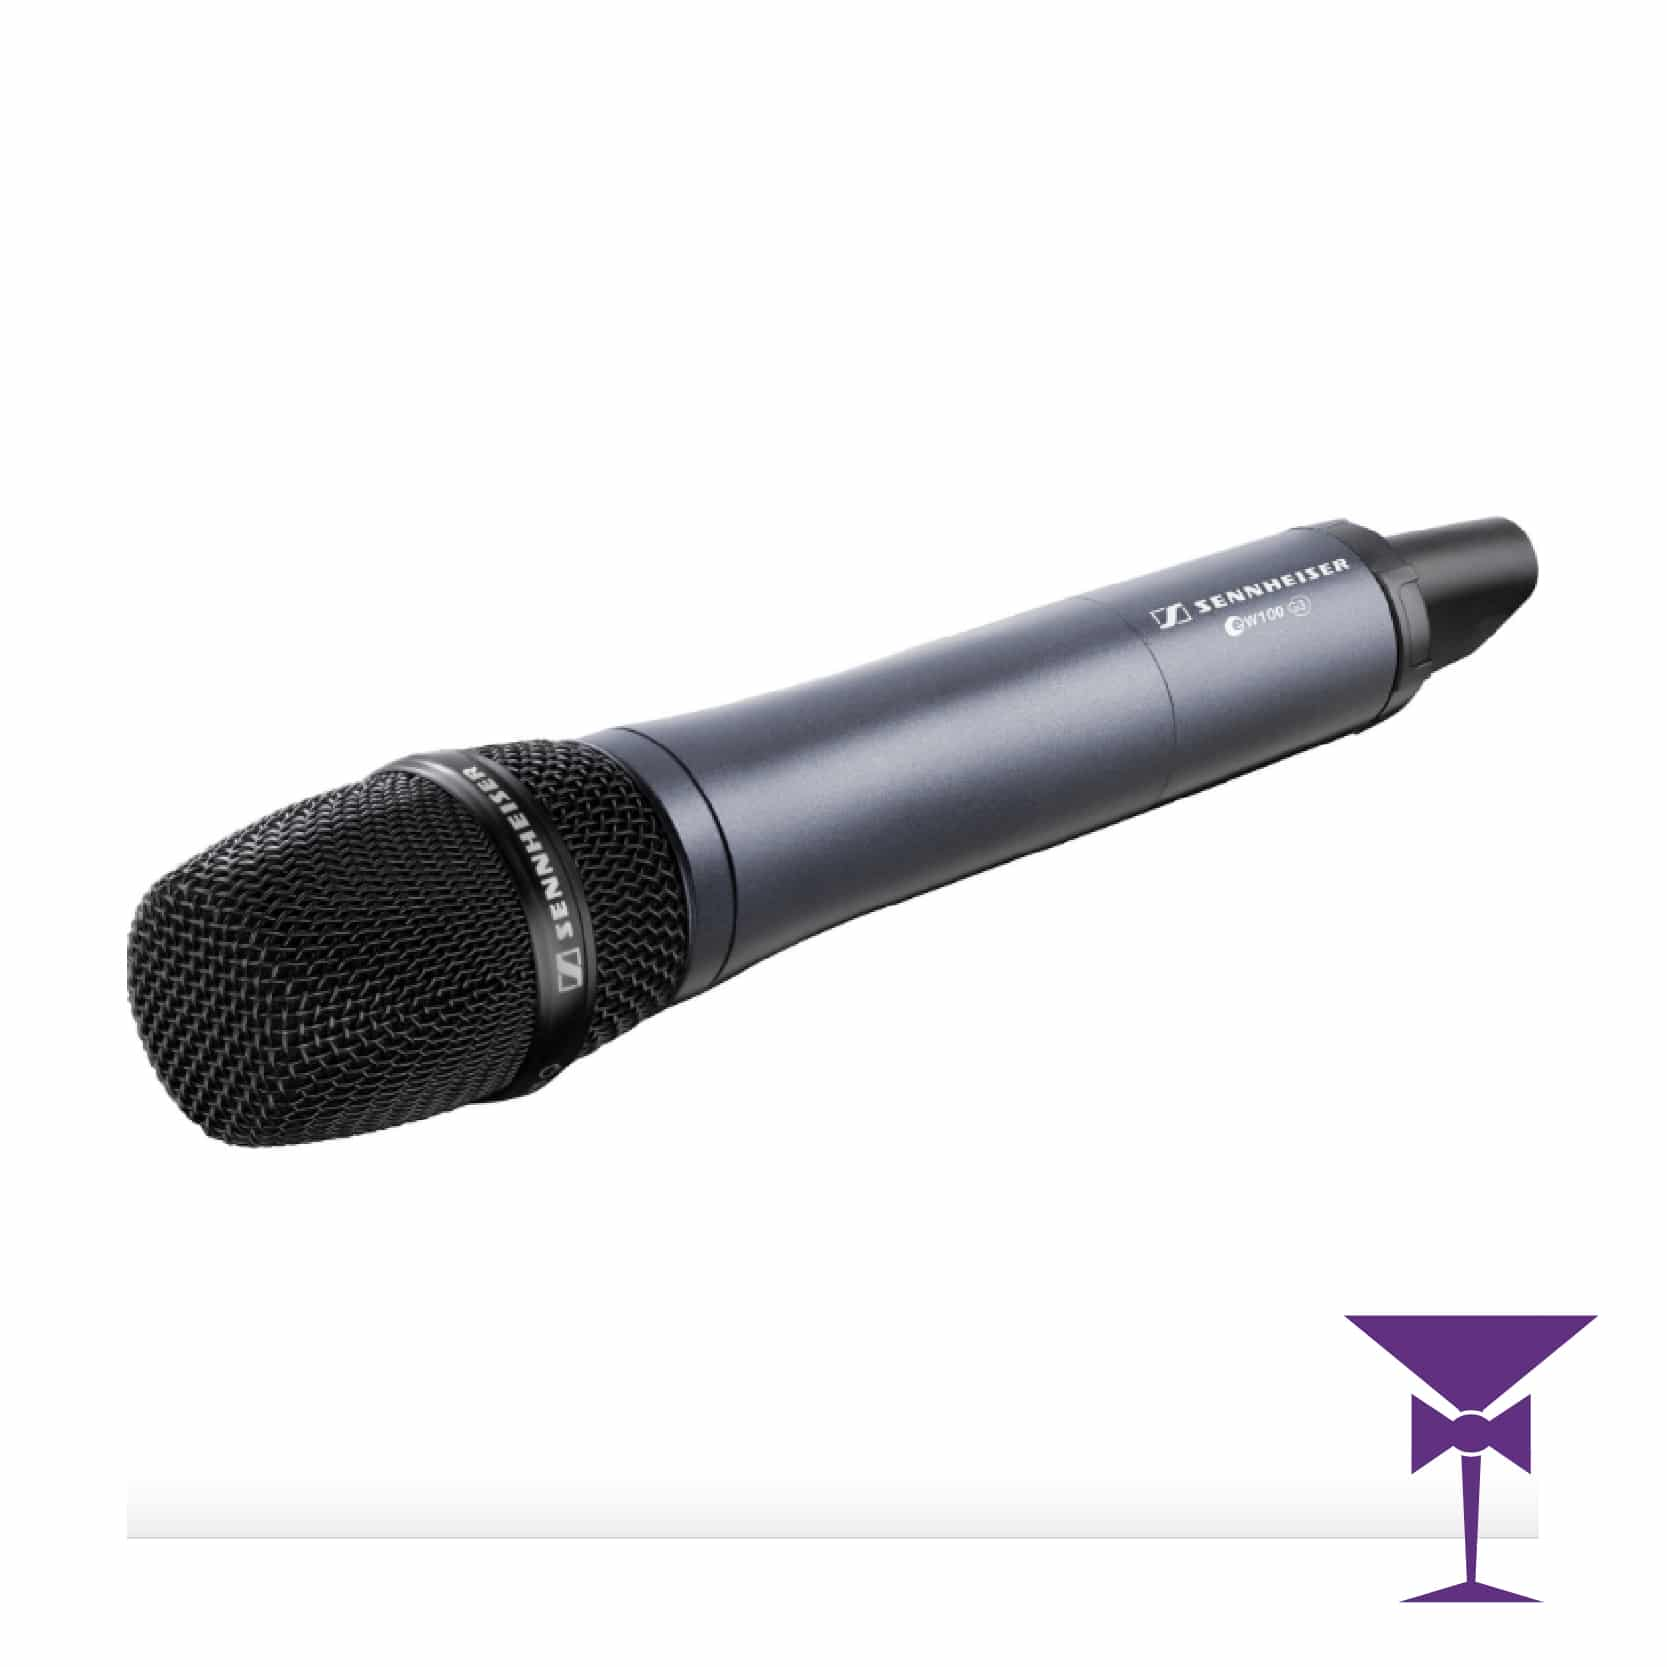 High quality wireless handheld mic hire in London